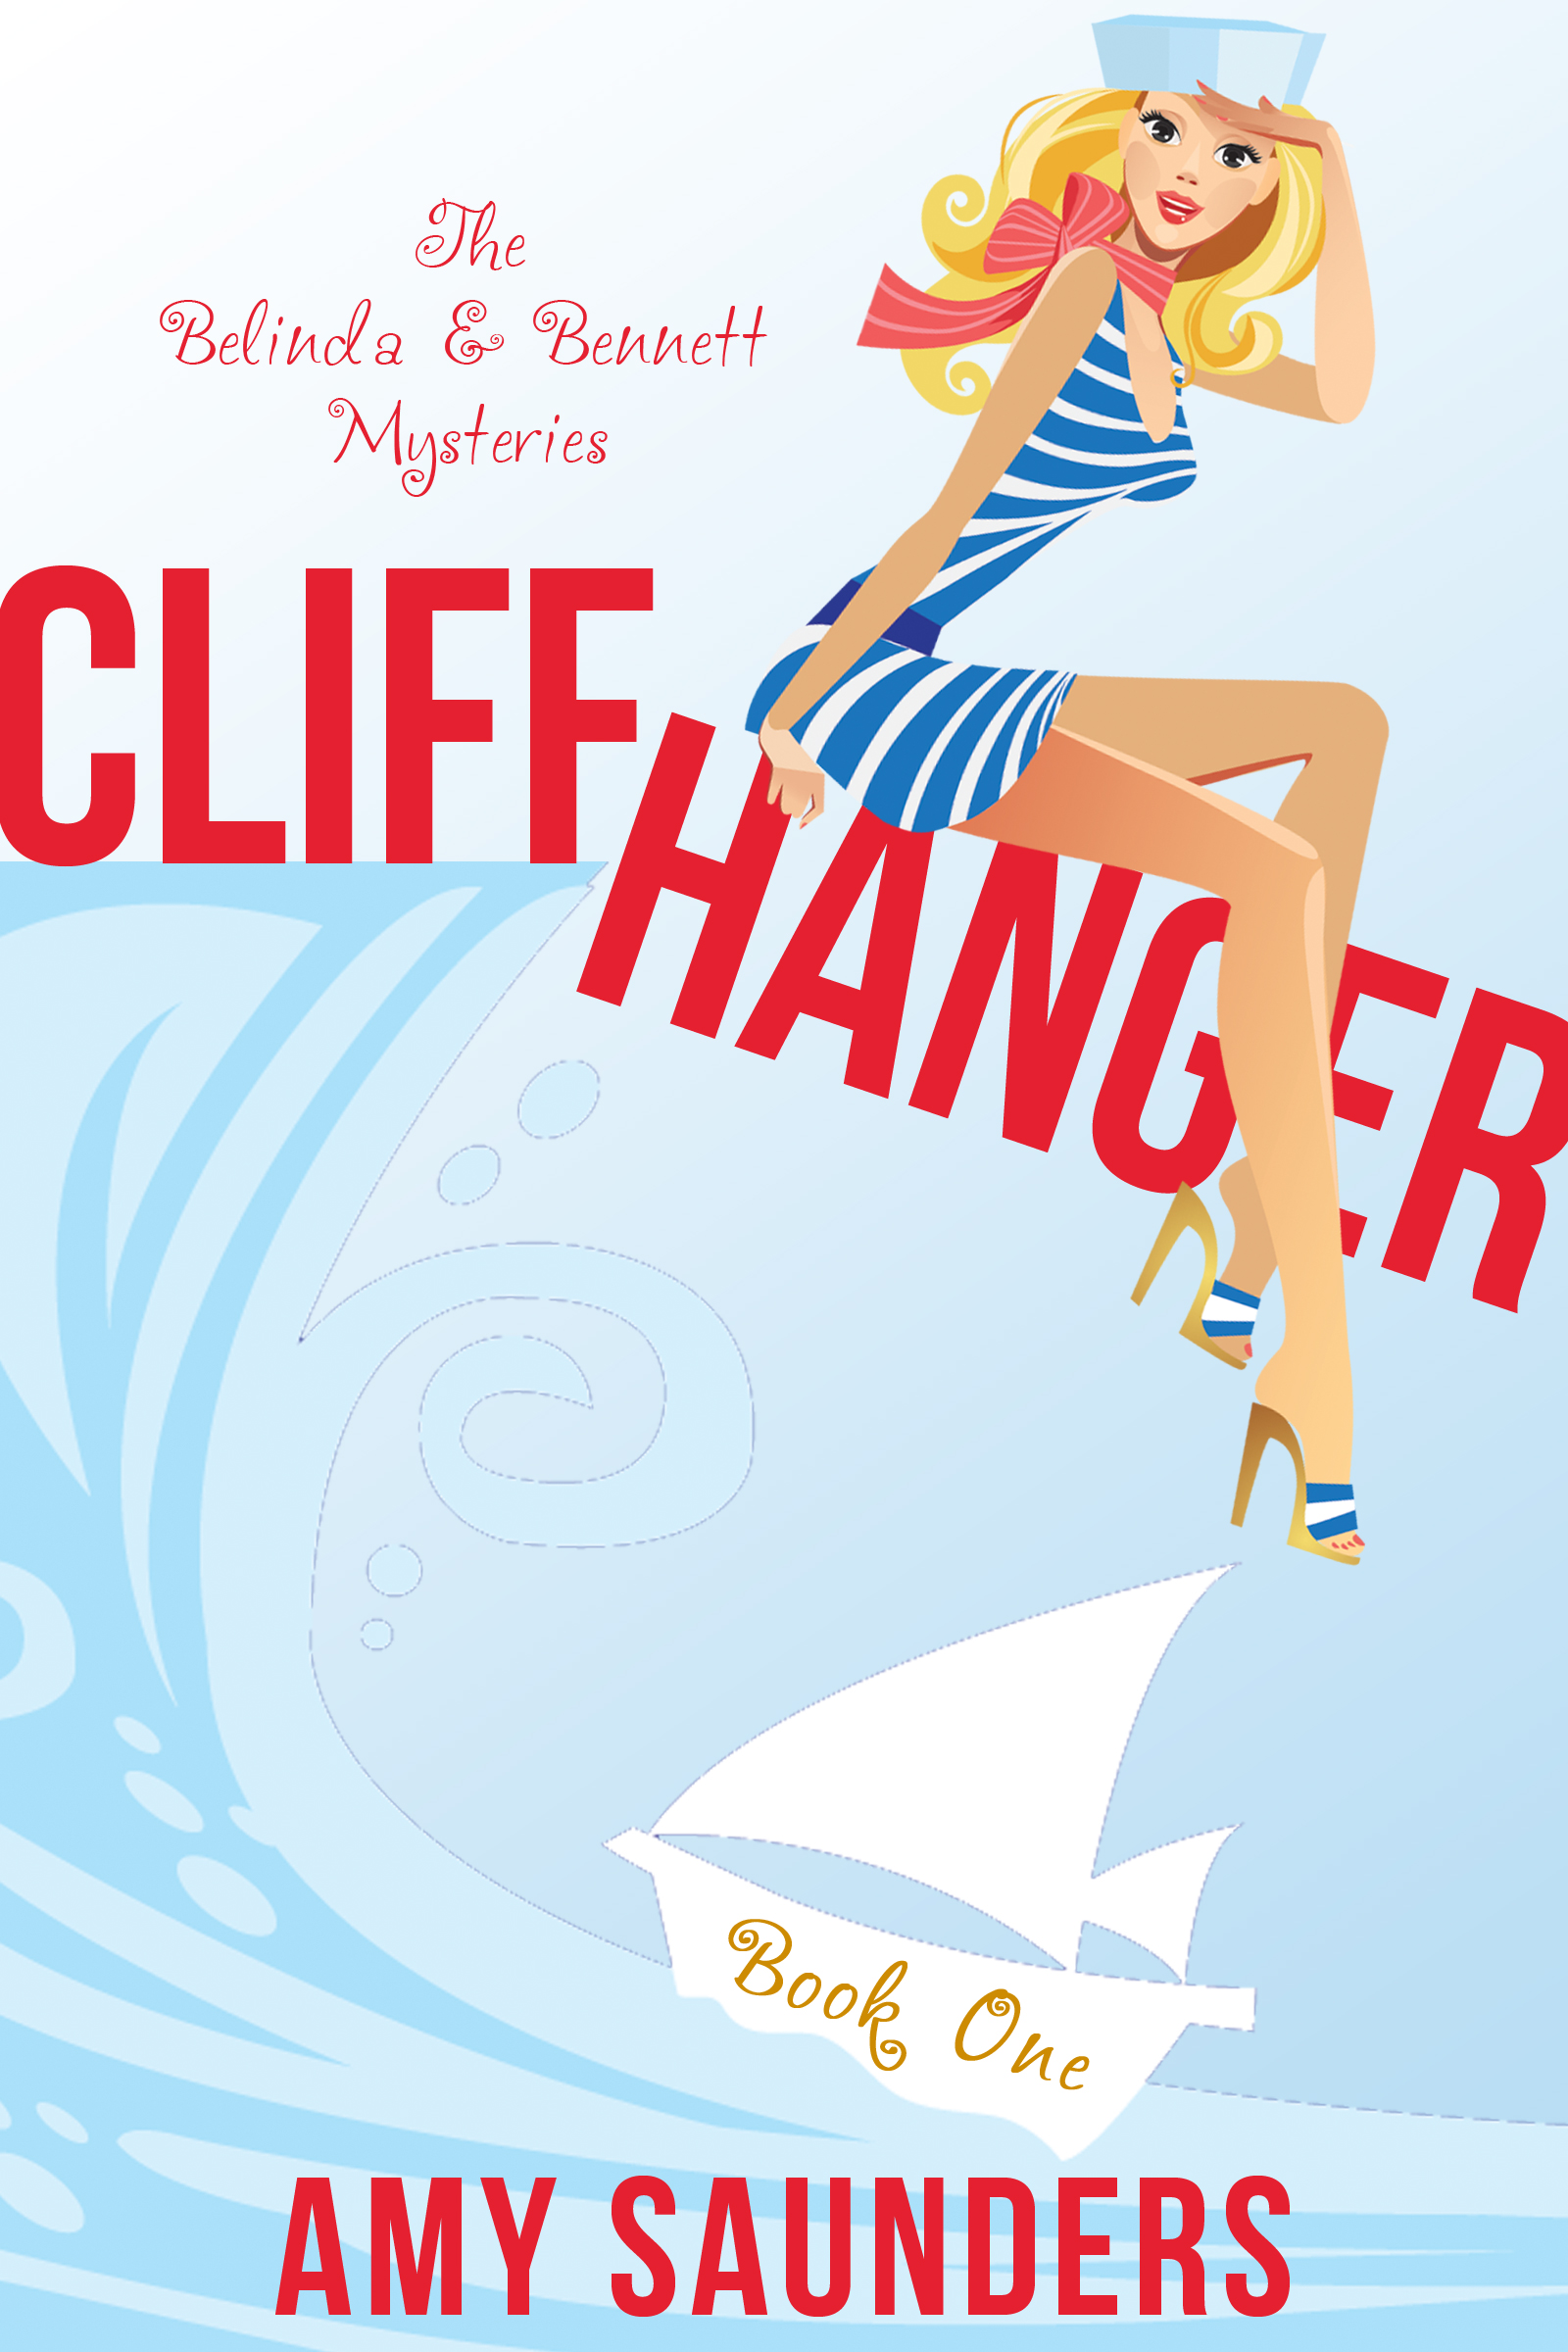 Cliffhanger (The Belinda & Bennett Mysteries, Book One) (sst-lxix)